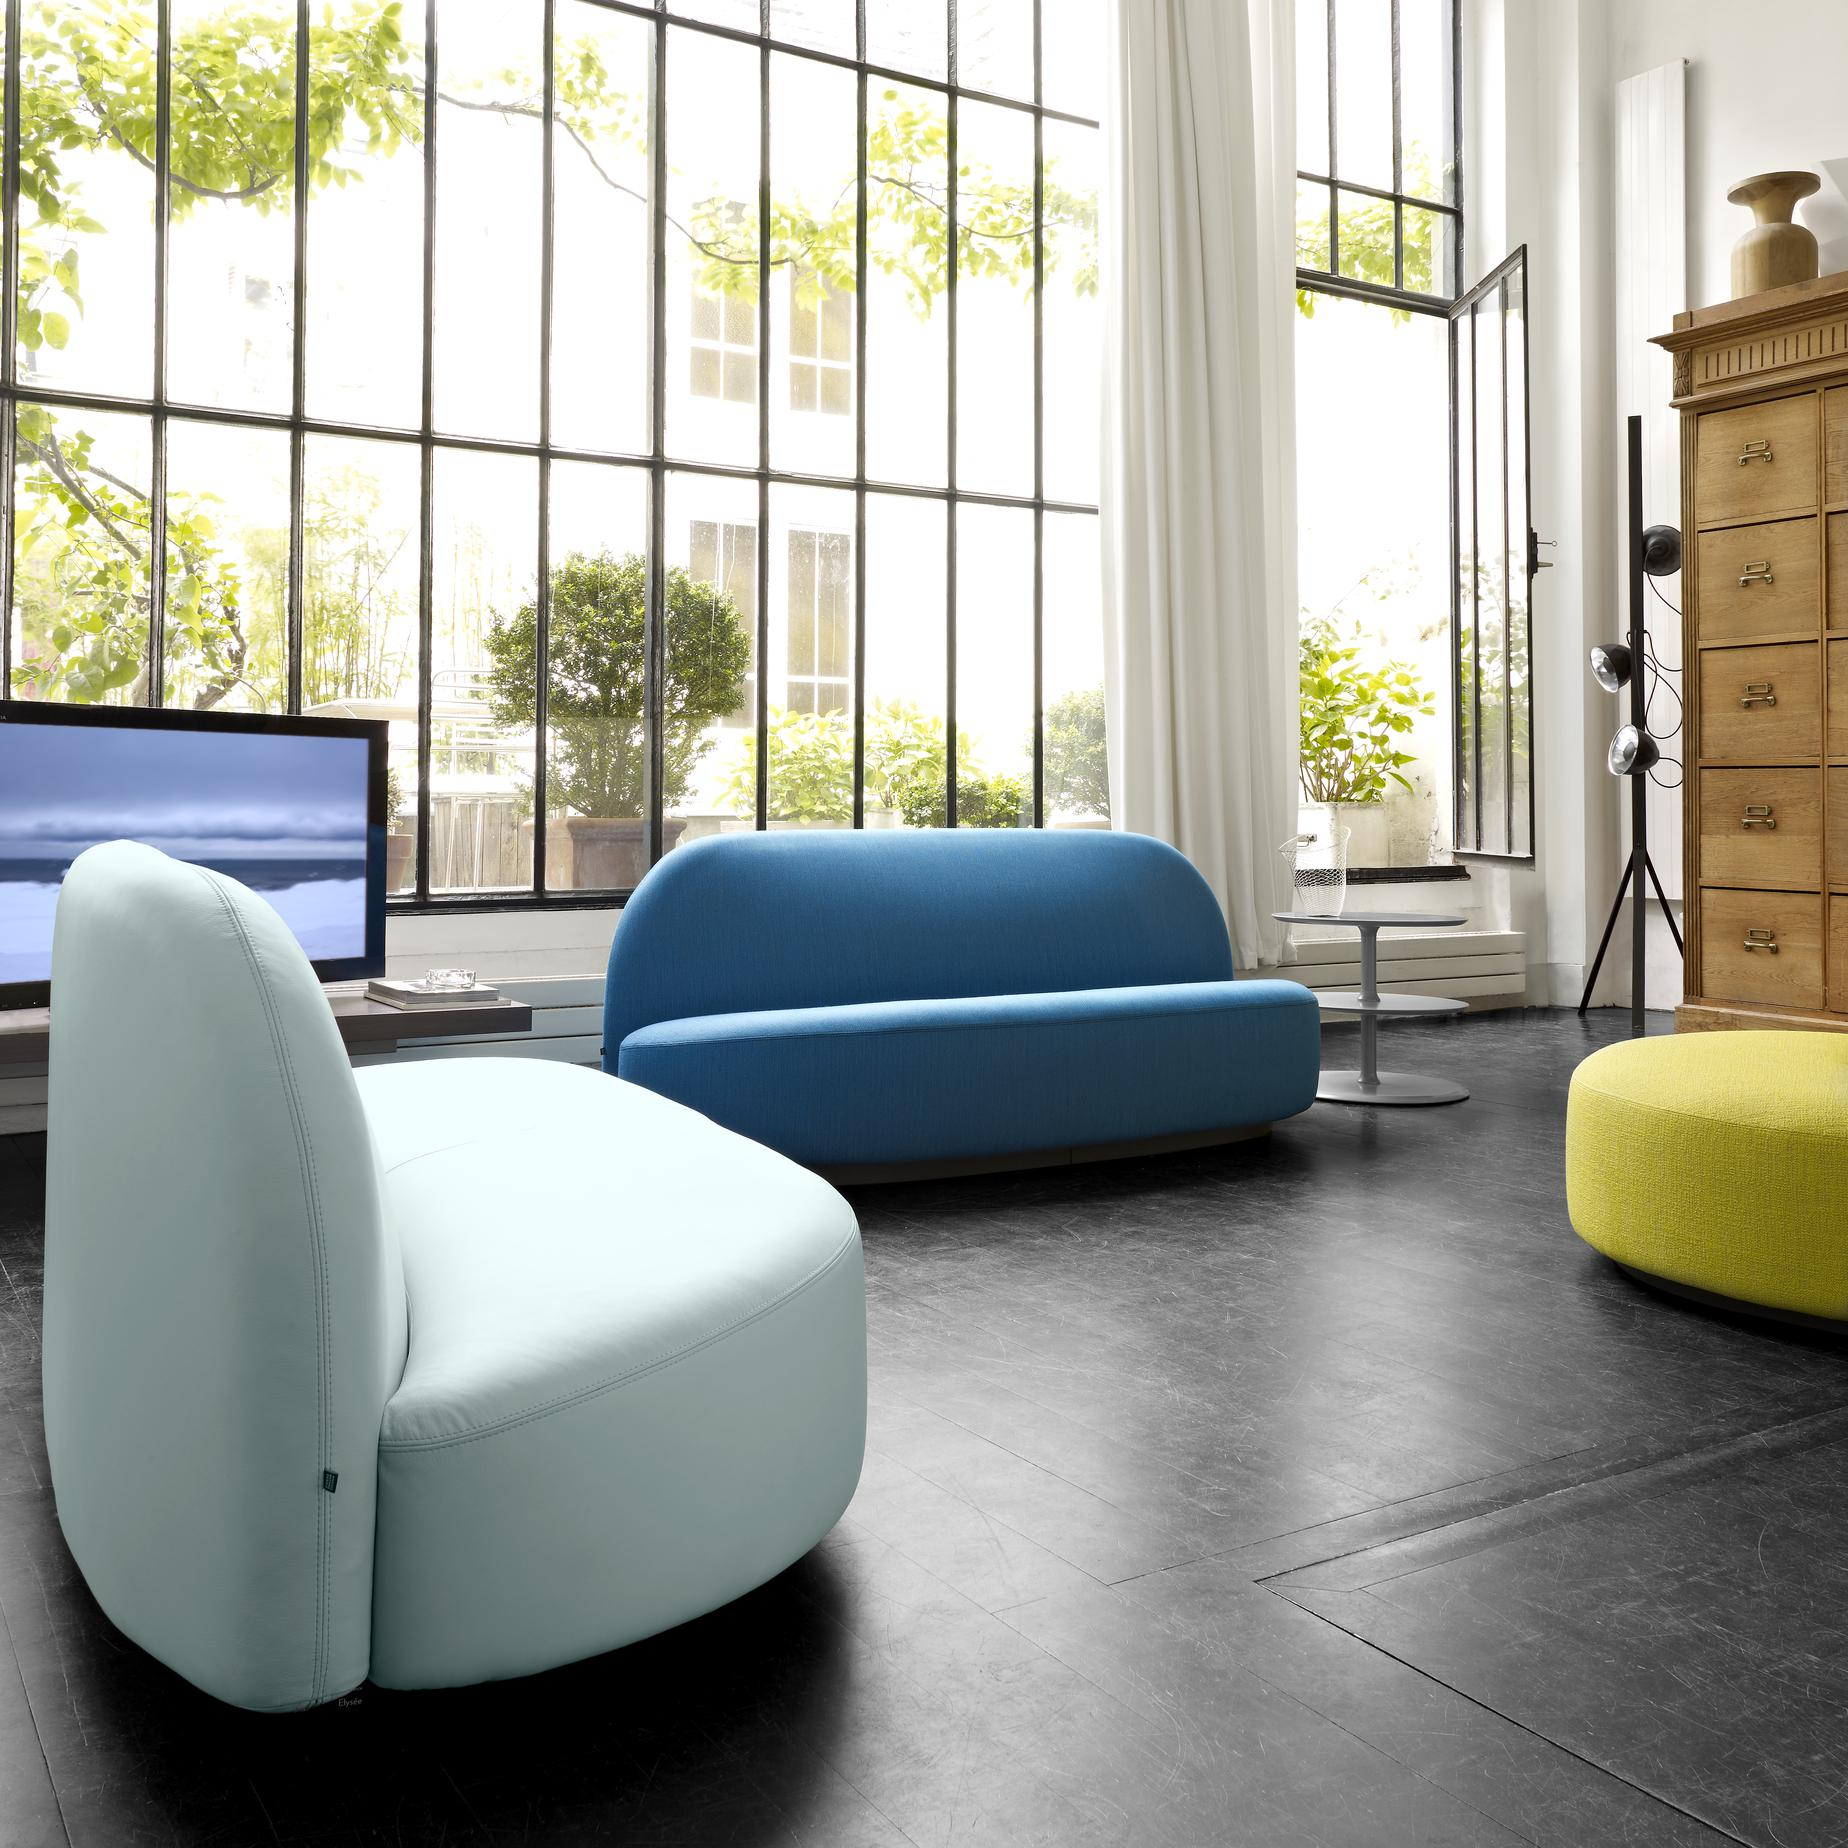 elysee upholstery from designer pierre paulin ligne. Black Bedroom Furniture Sets. Home Design Ideas